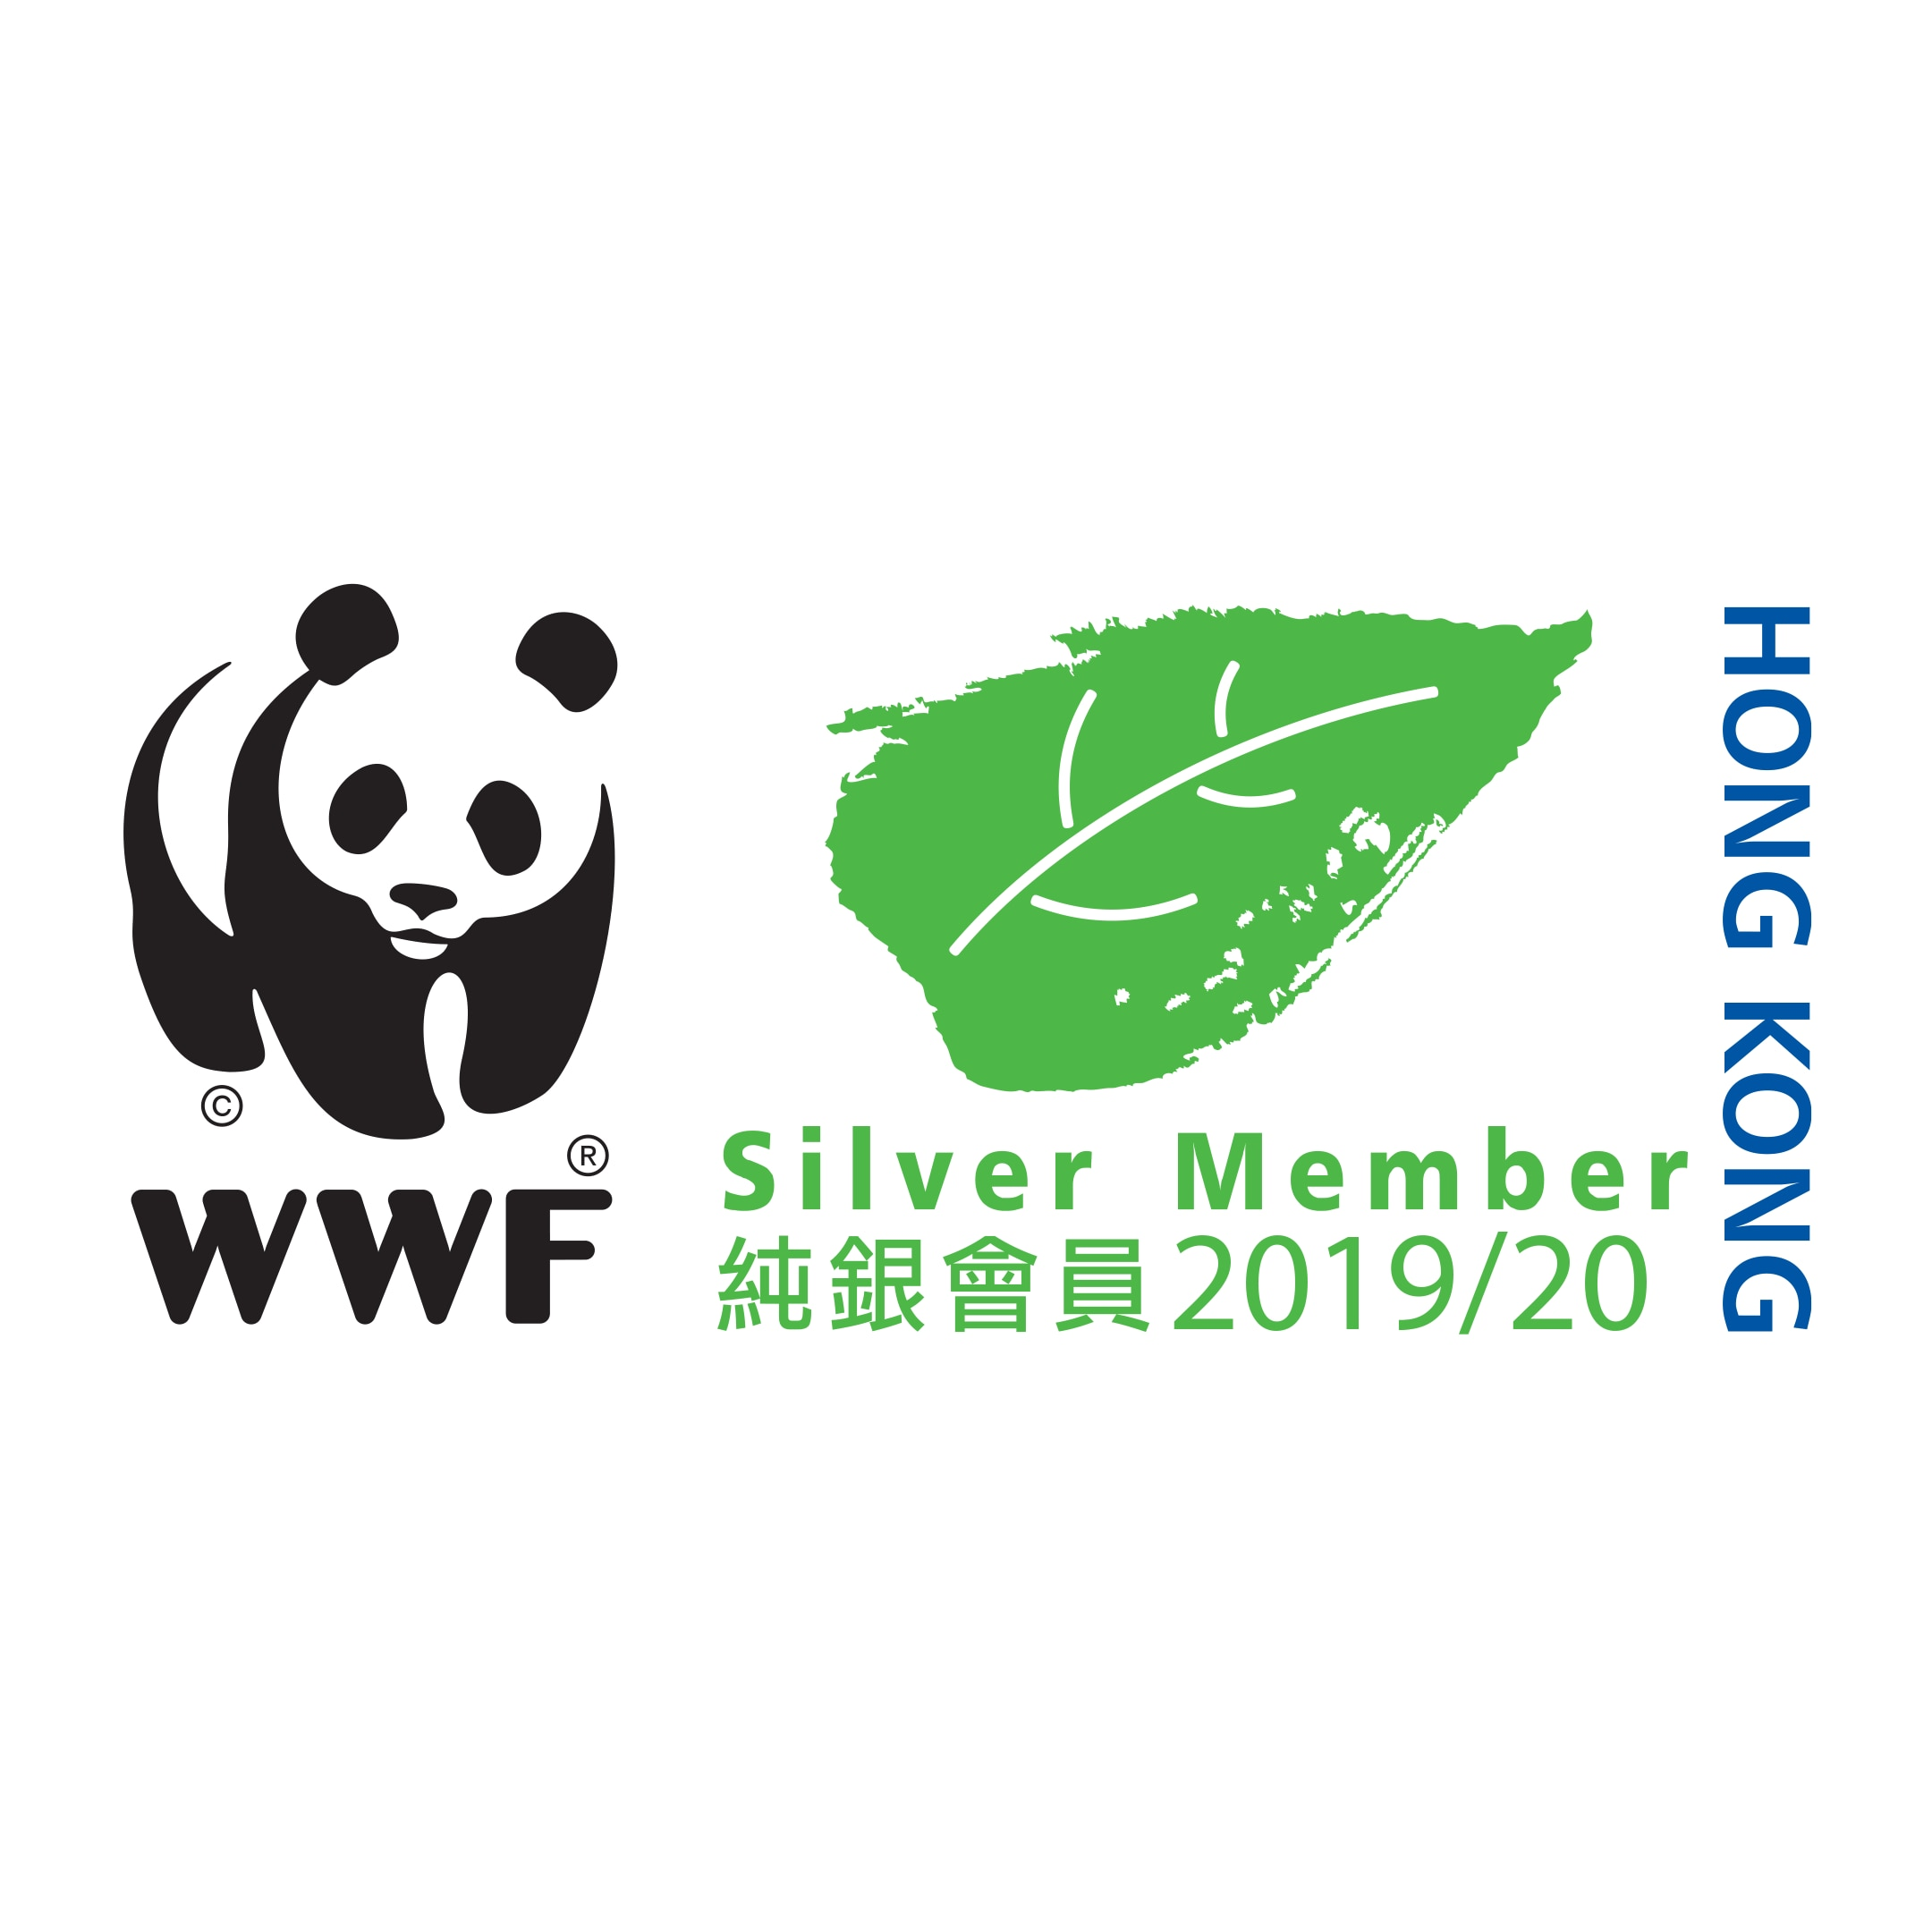 Lidl Hong Kong Limited - Corporate Responsibility - WWF Hong Kong